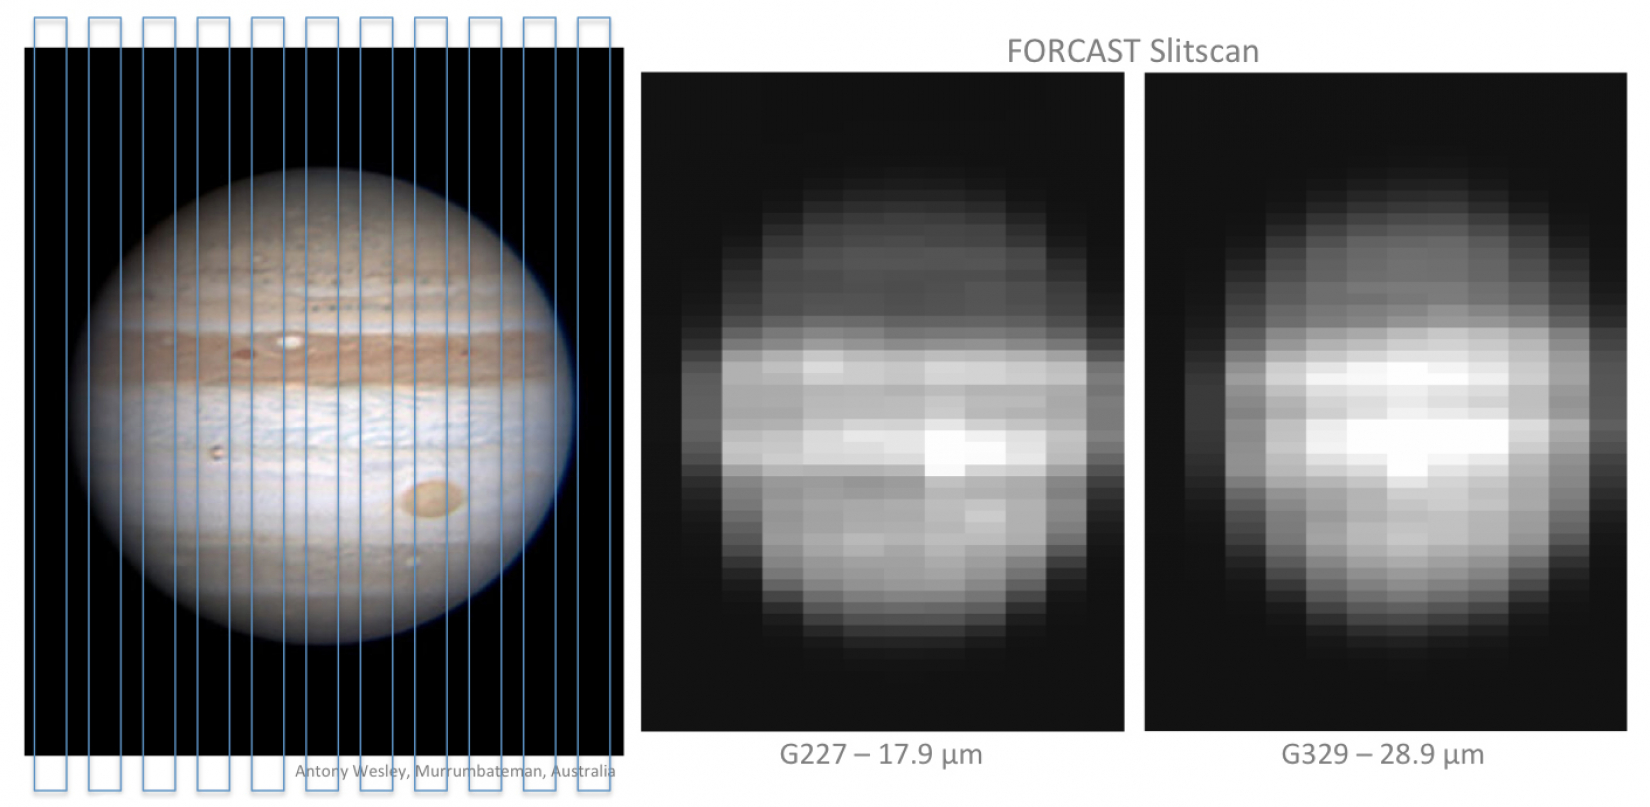 Jupiter was observed with SOFIA by stepping the FORCAST spectroscopic slit across the planet.